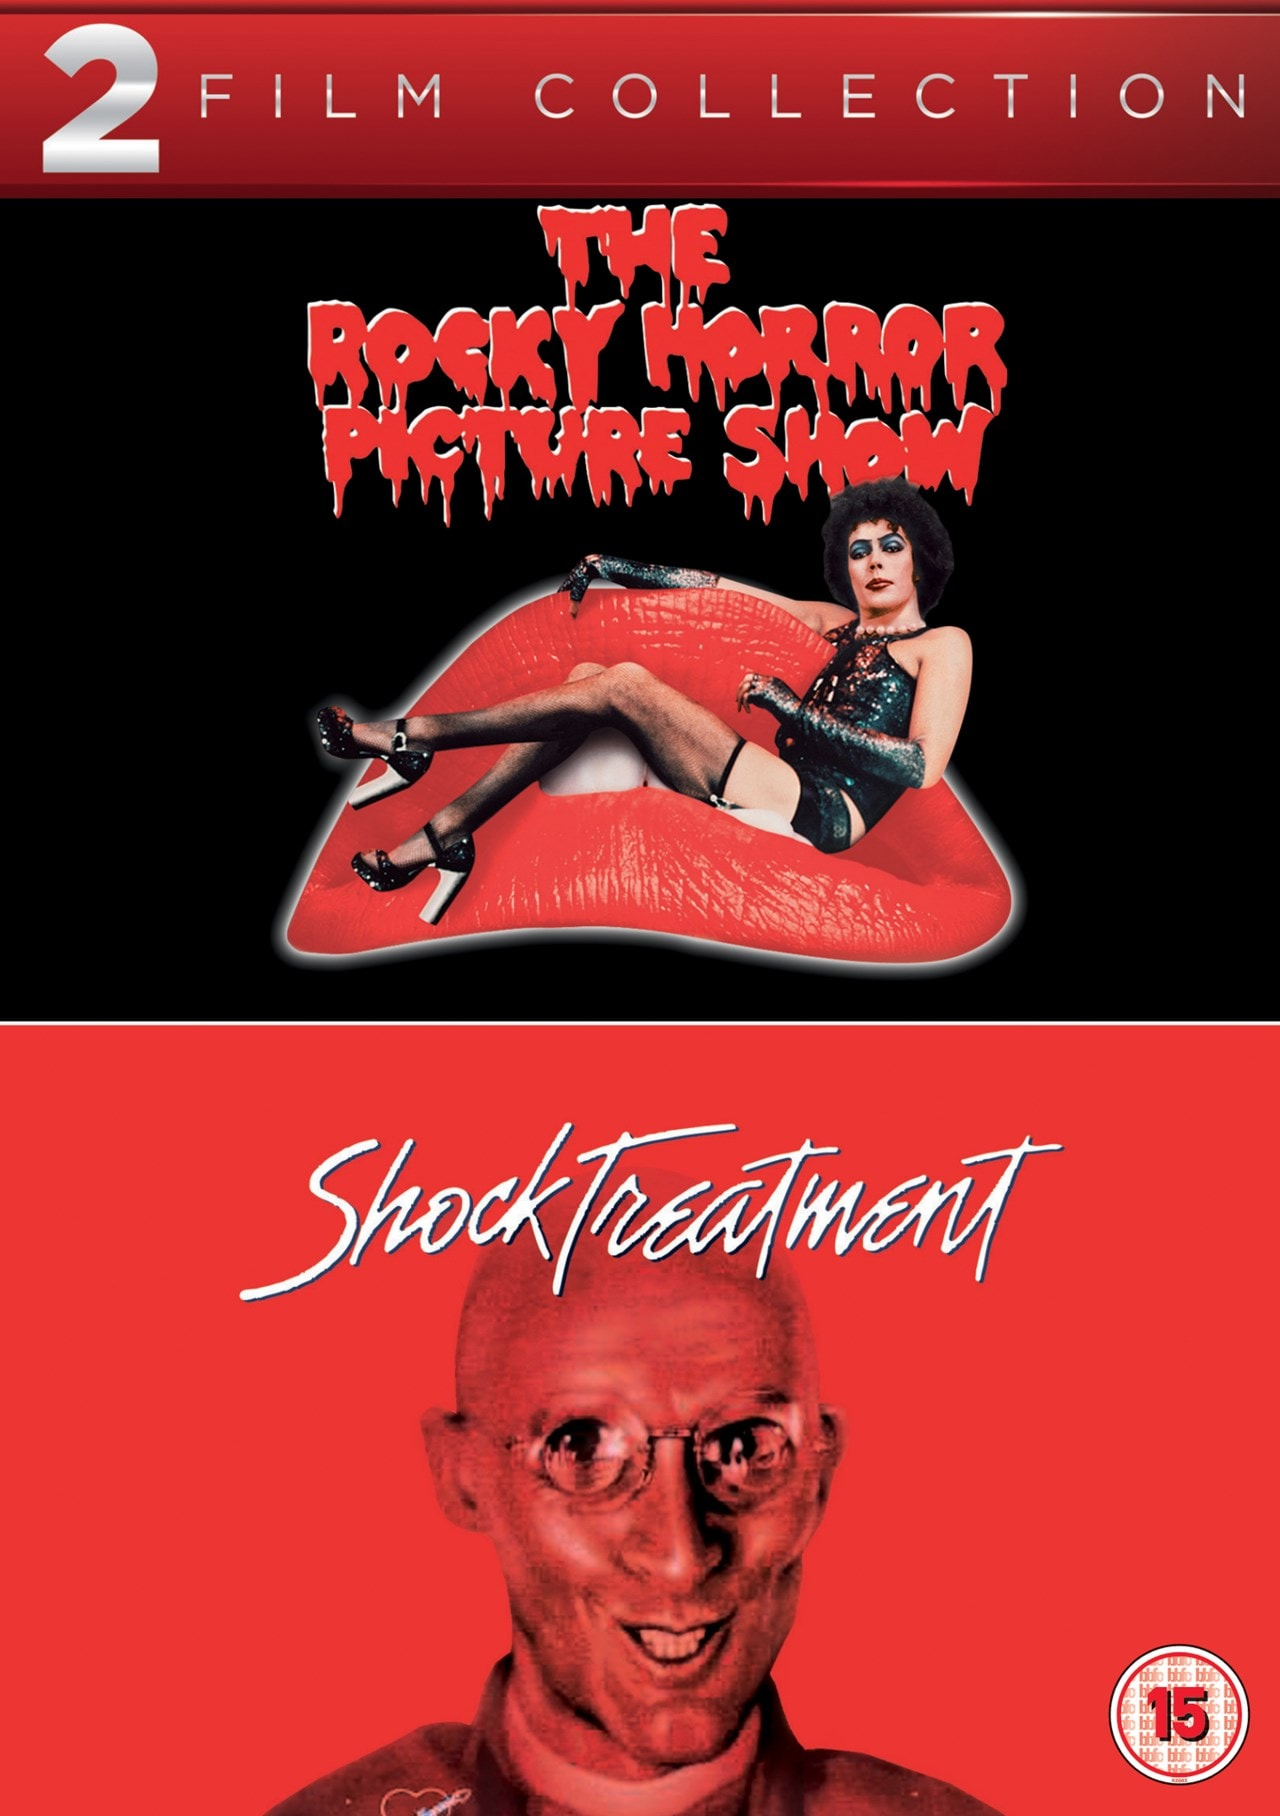 The Rocky Horror Picture Show/Shock Treatment - 1